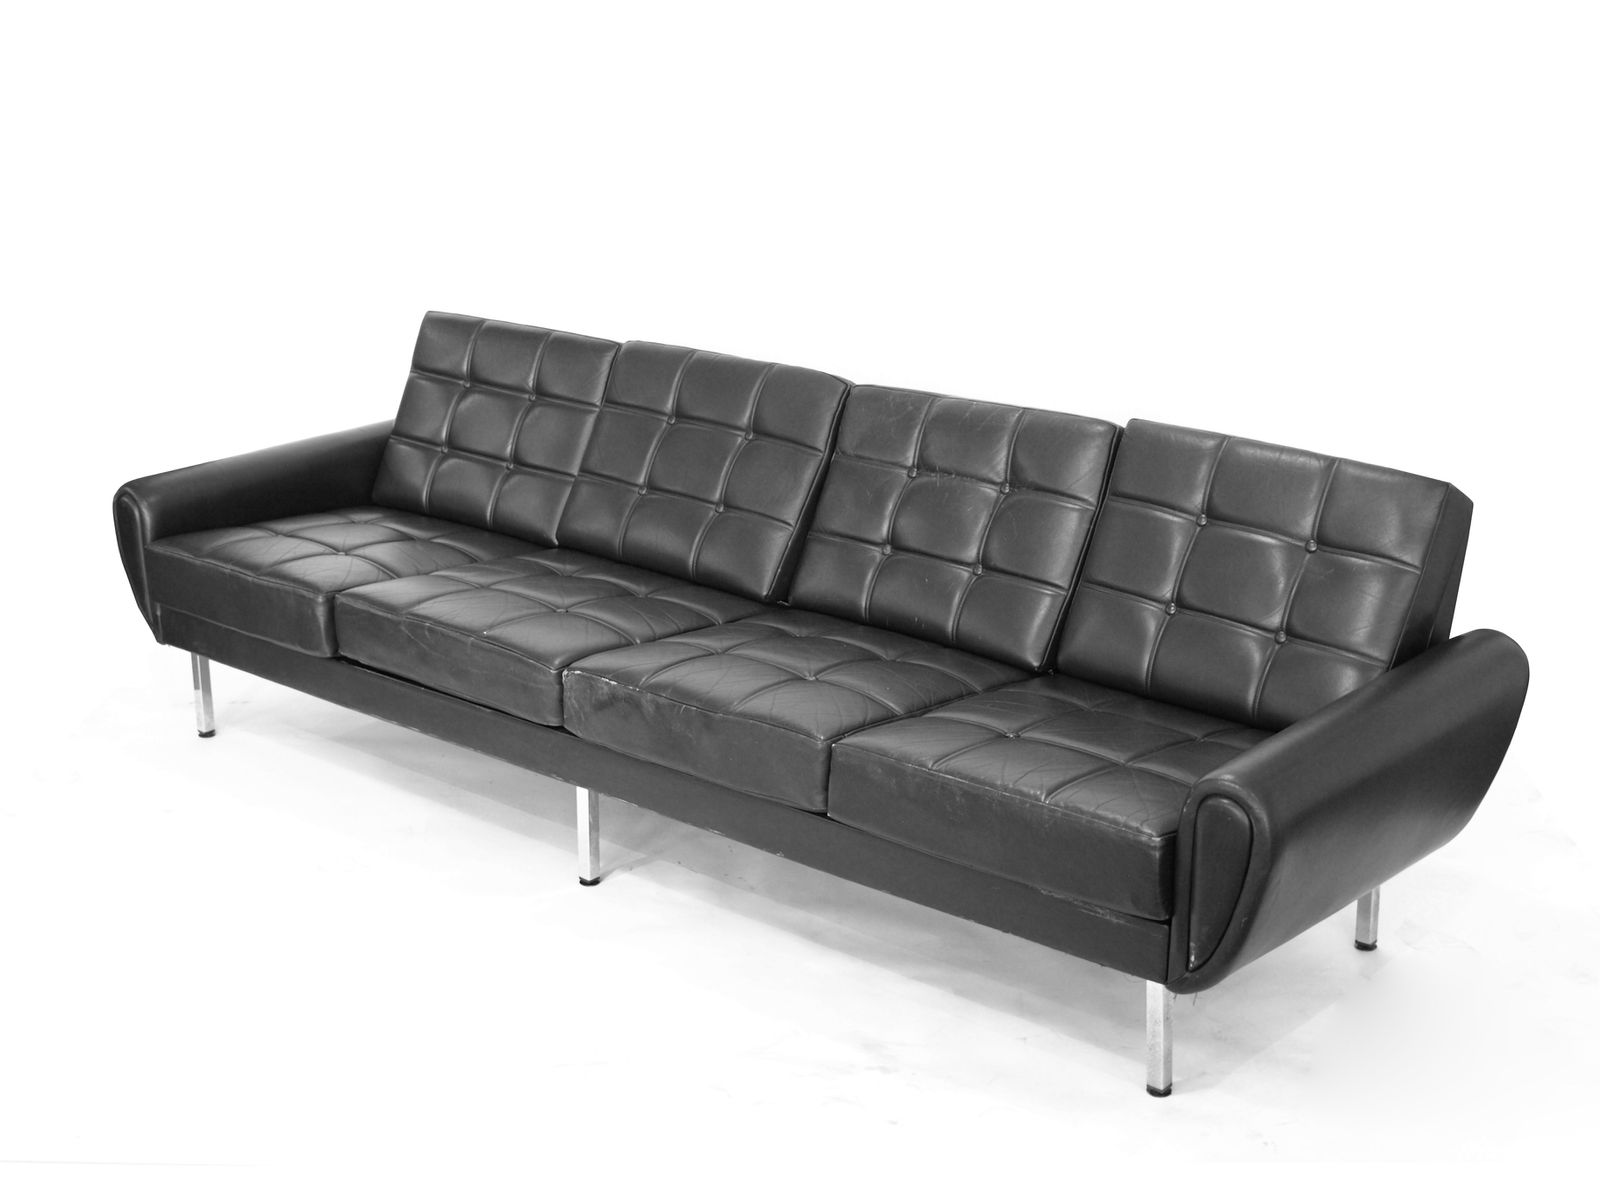 Four seater black leather sofa 1970s for sale at pamono for Leather sofa 7 seater